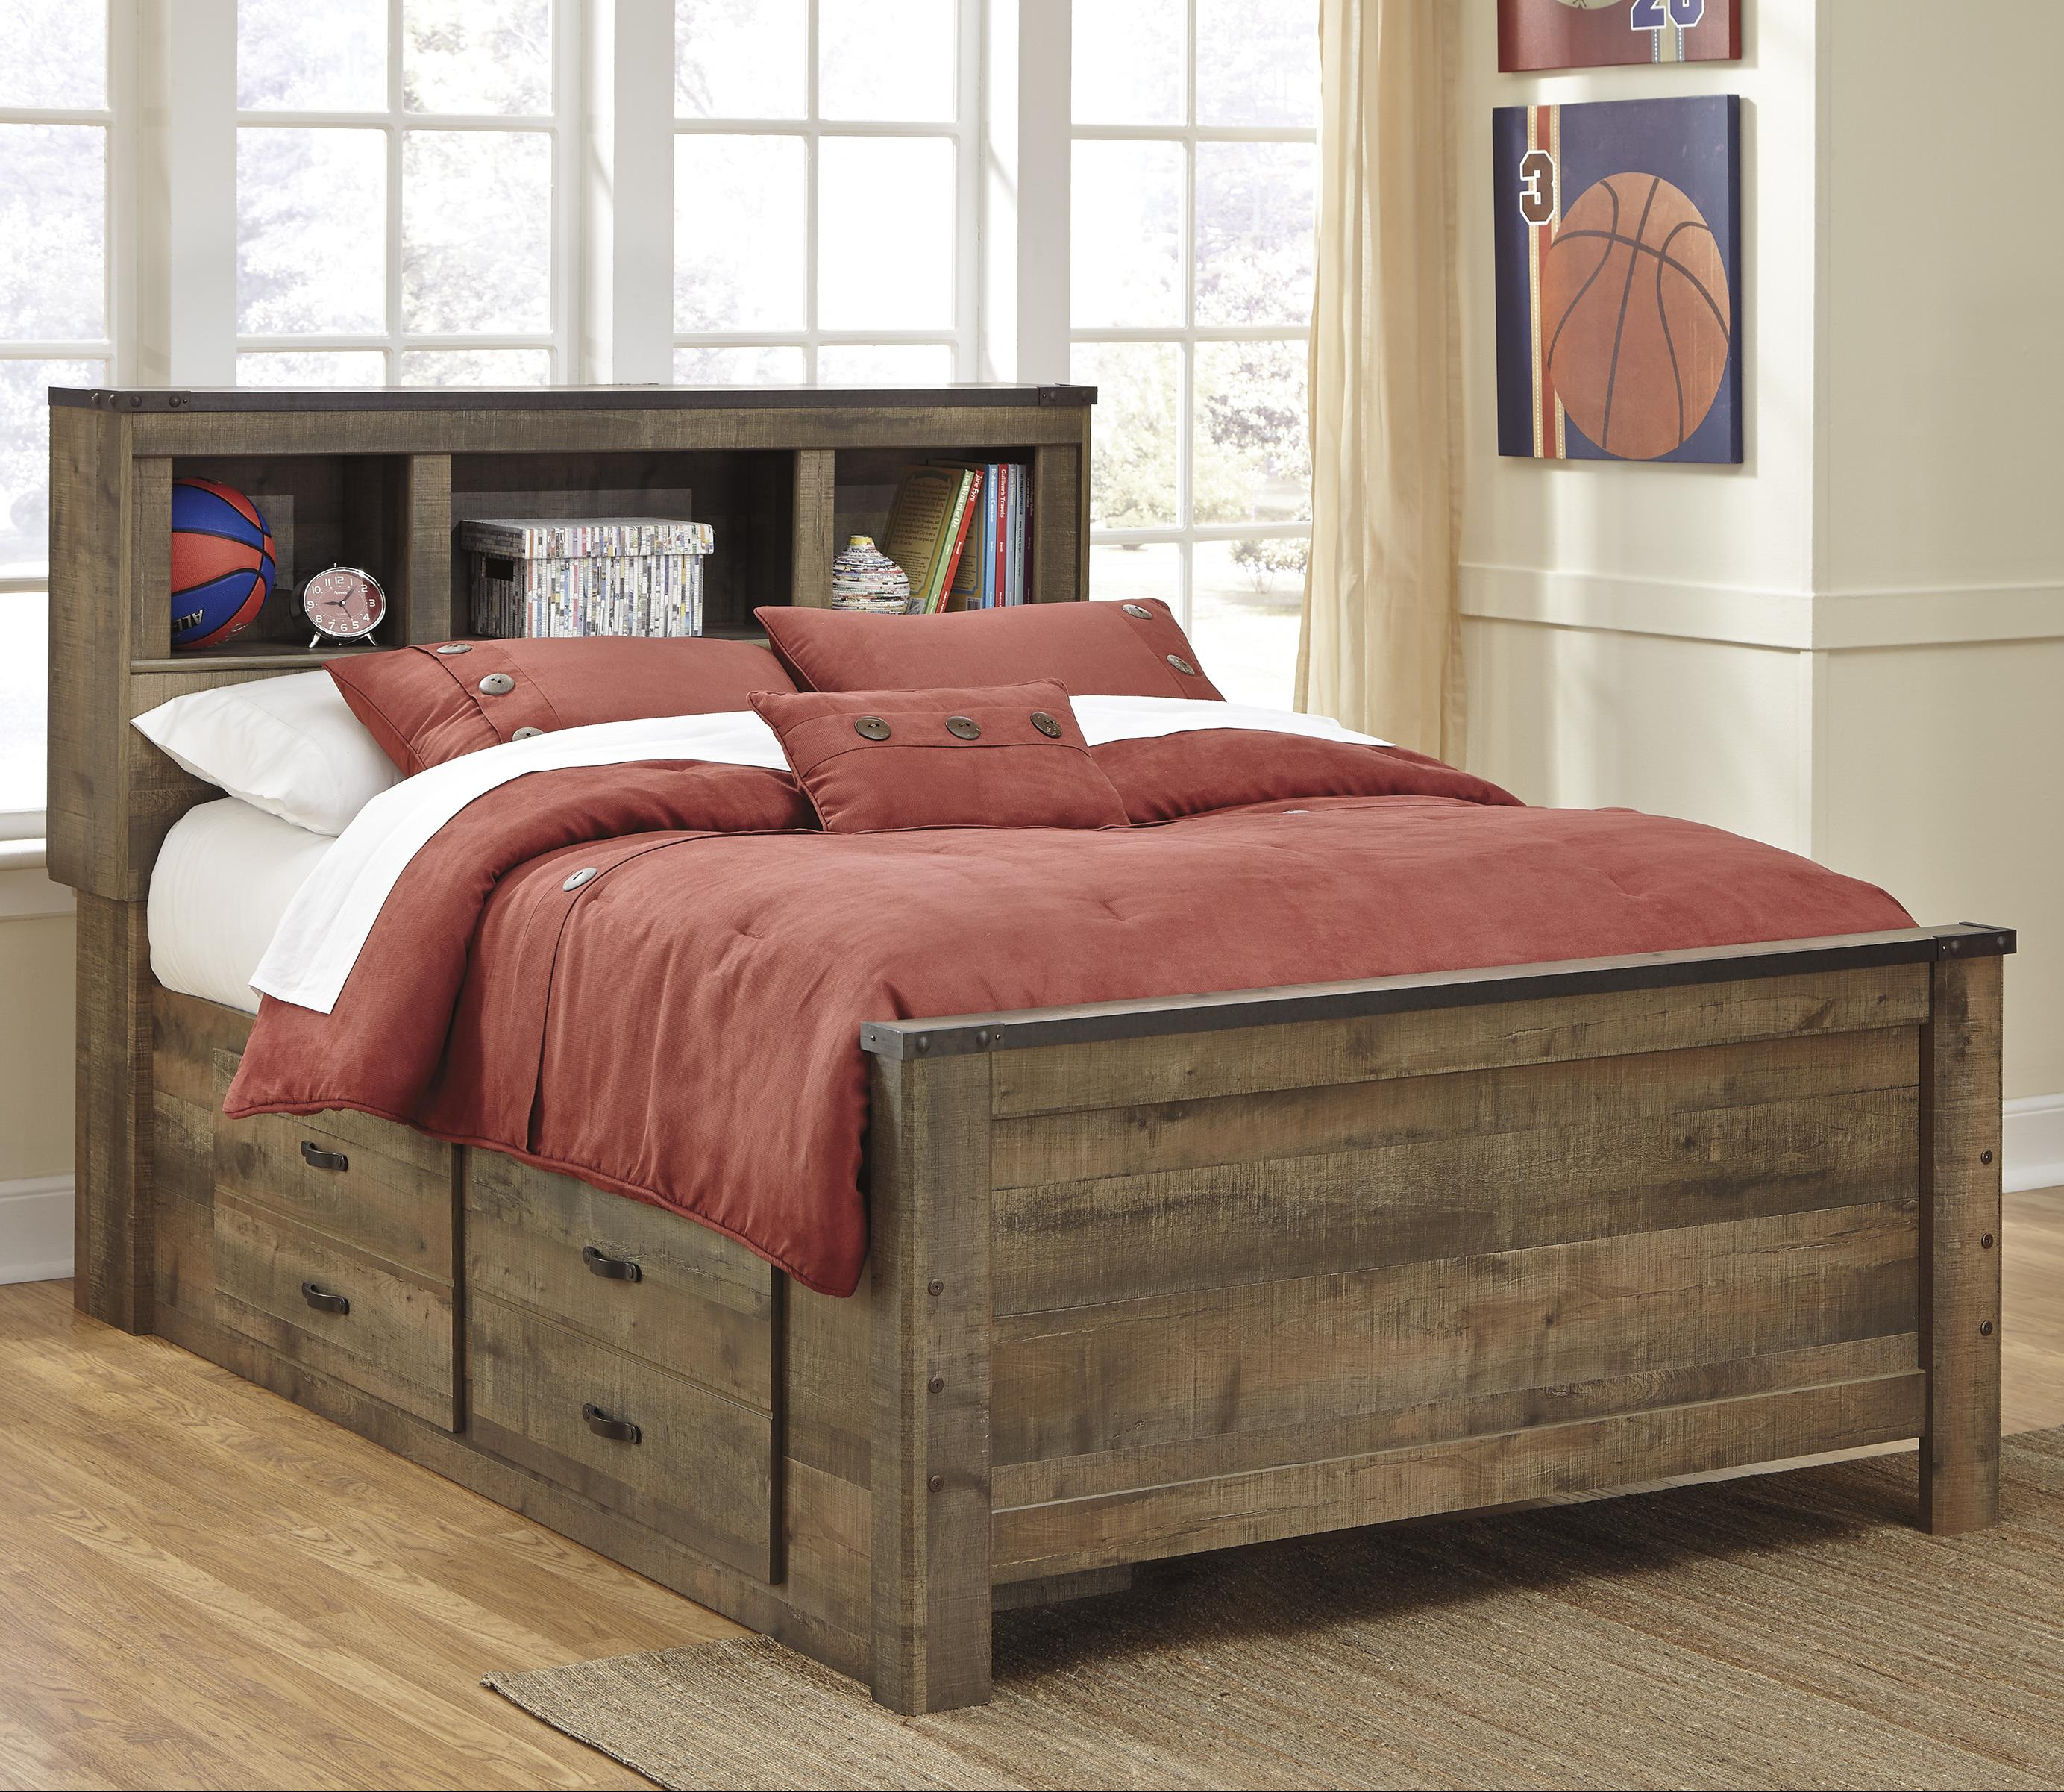 Full Bookcase Bed with Under Bed Storage